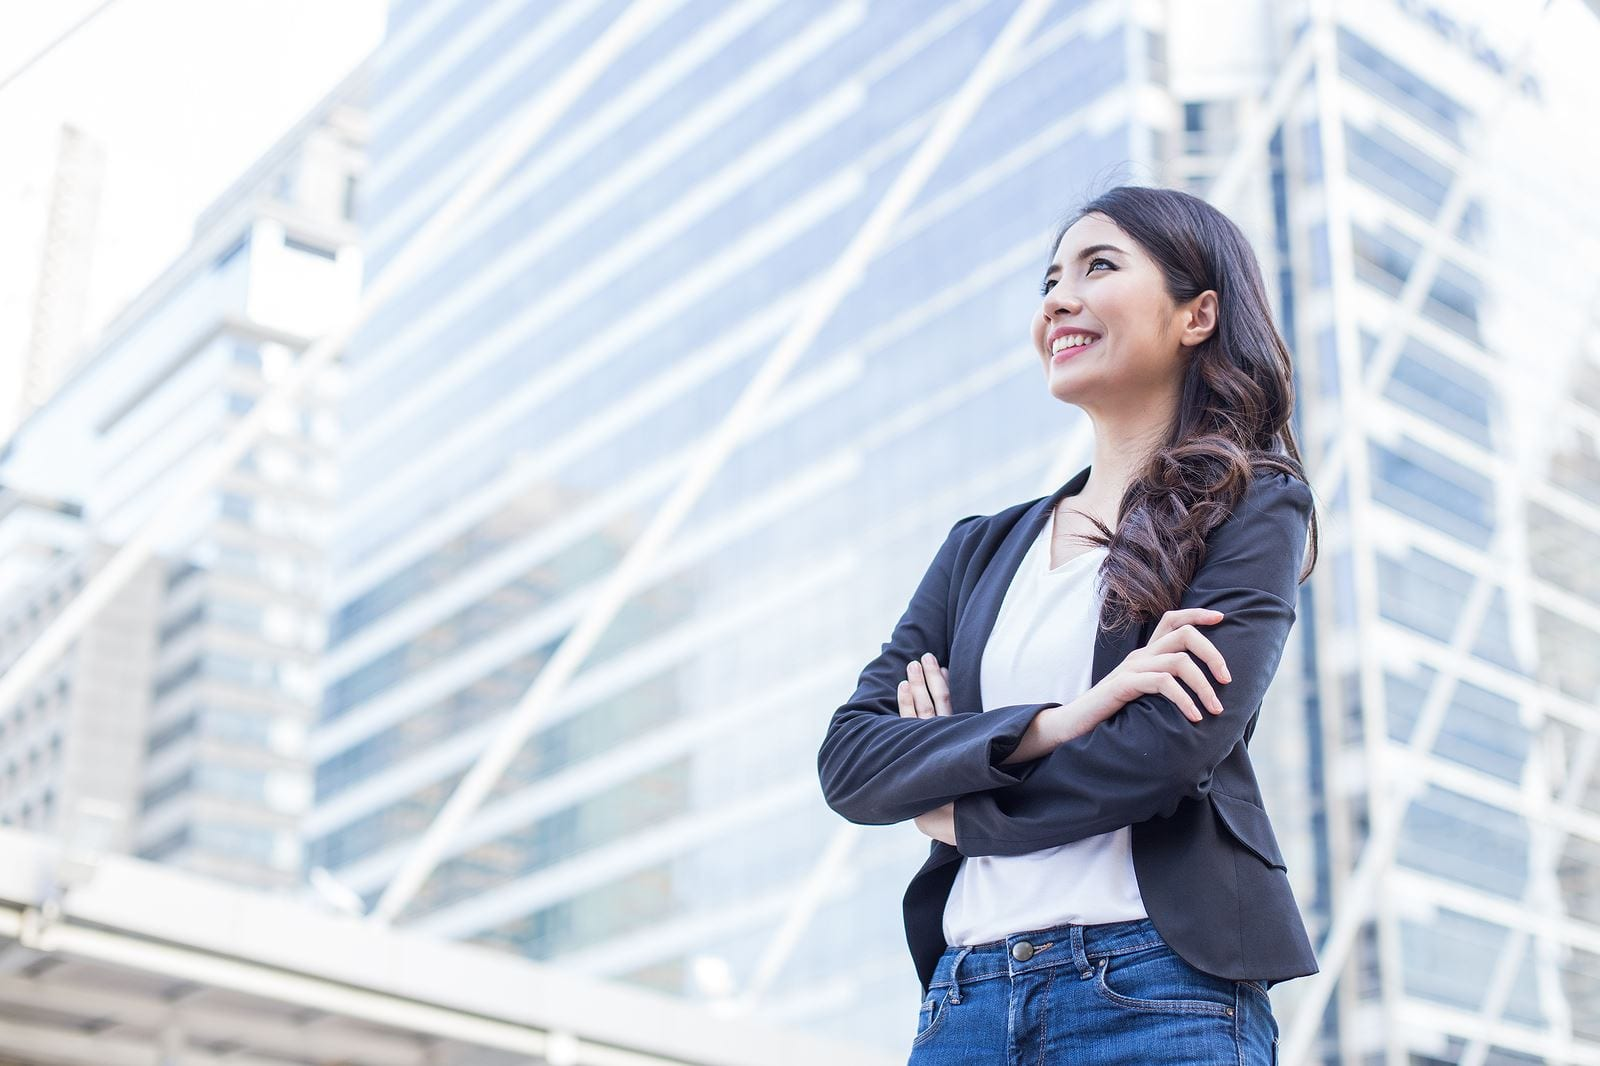 Is Real Estate A Good Investment For Young People In 2018 Investment Property Tips Mashvisor Real Estate Blog